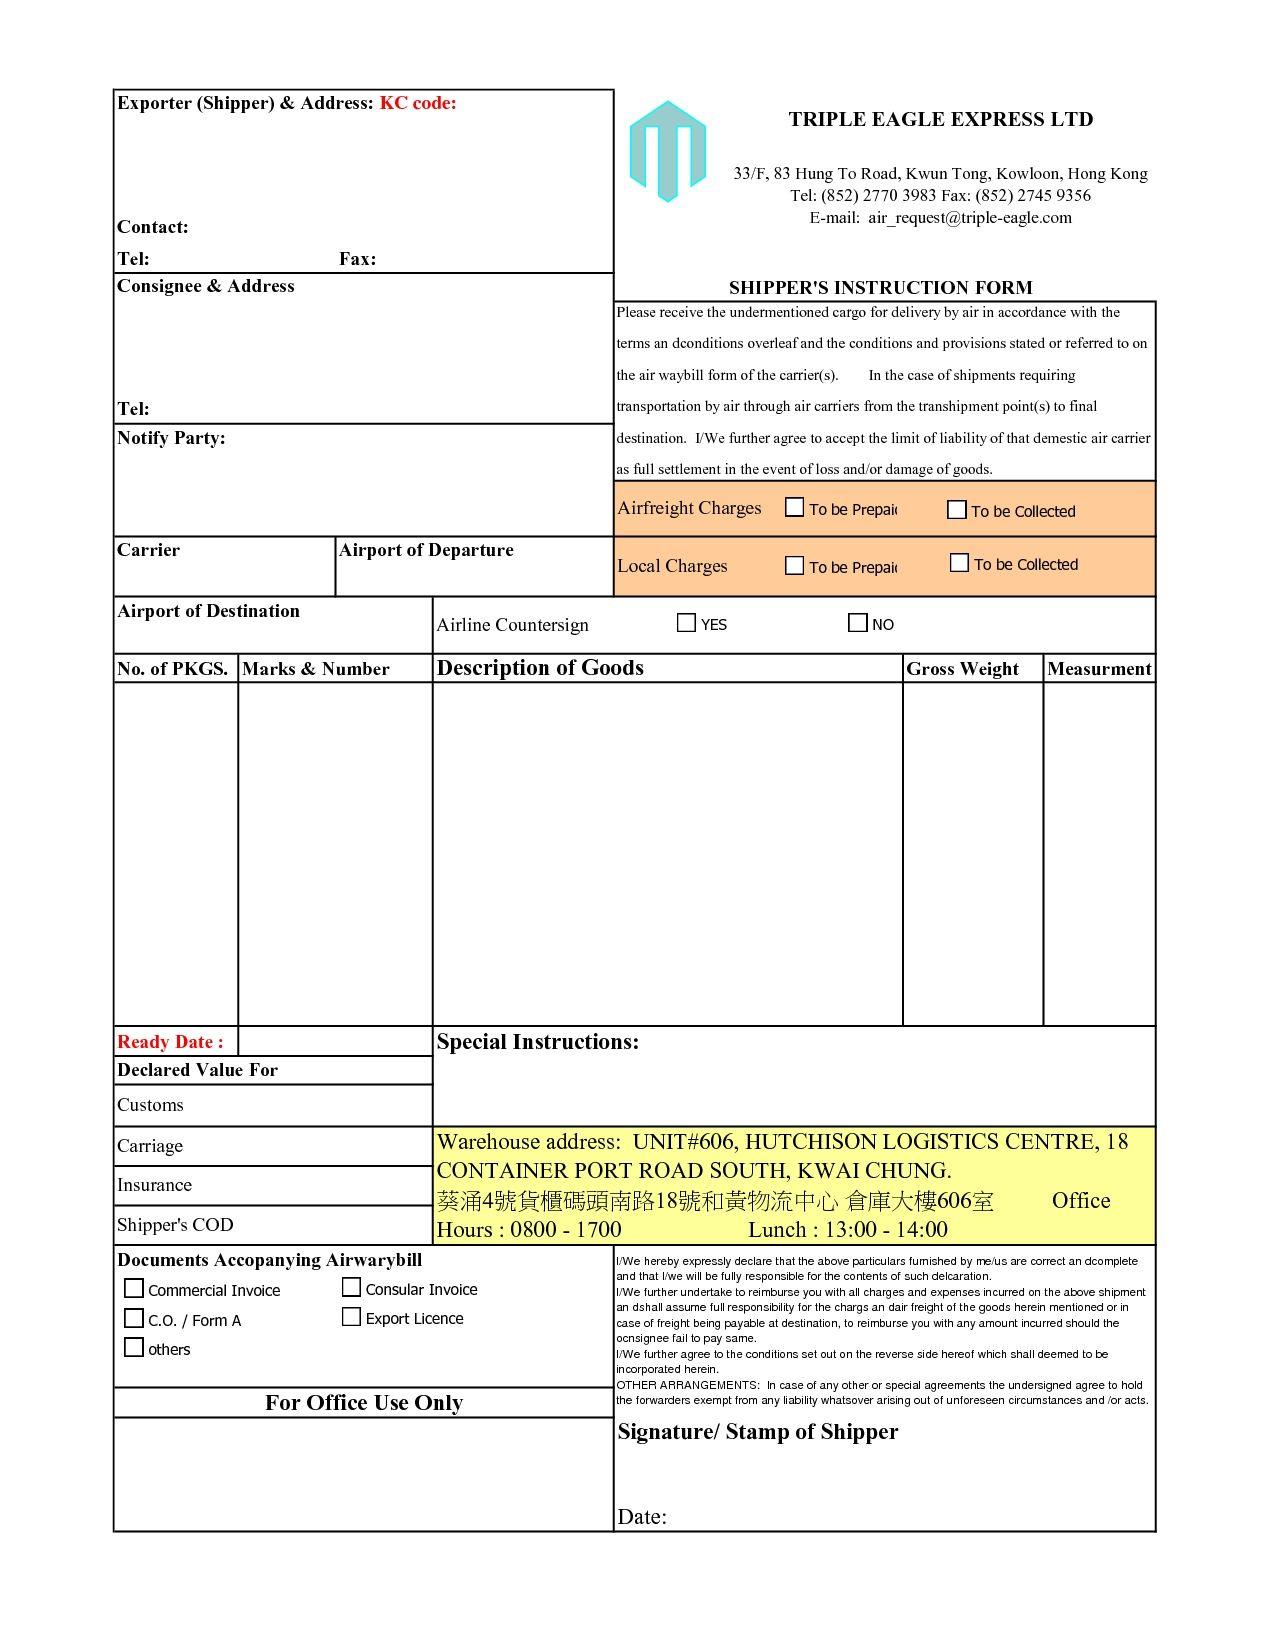 Rental Receipt Letter Excel Consular Invoice Format Pdf Invoicegenerator Consular Invoice  Free Invoice Format In Word Excel with What Is A Invoice Address Word Consular Invoice Format Pdf Invoicegenerator Consular Invoice Format Invoice Price Meaning Word